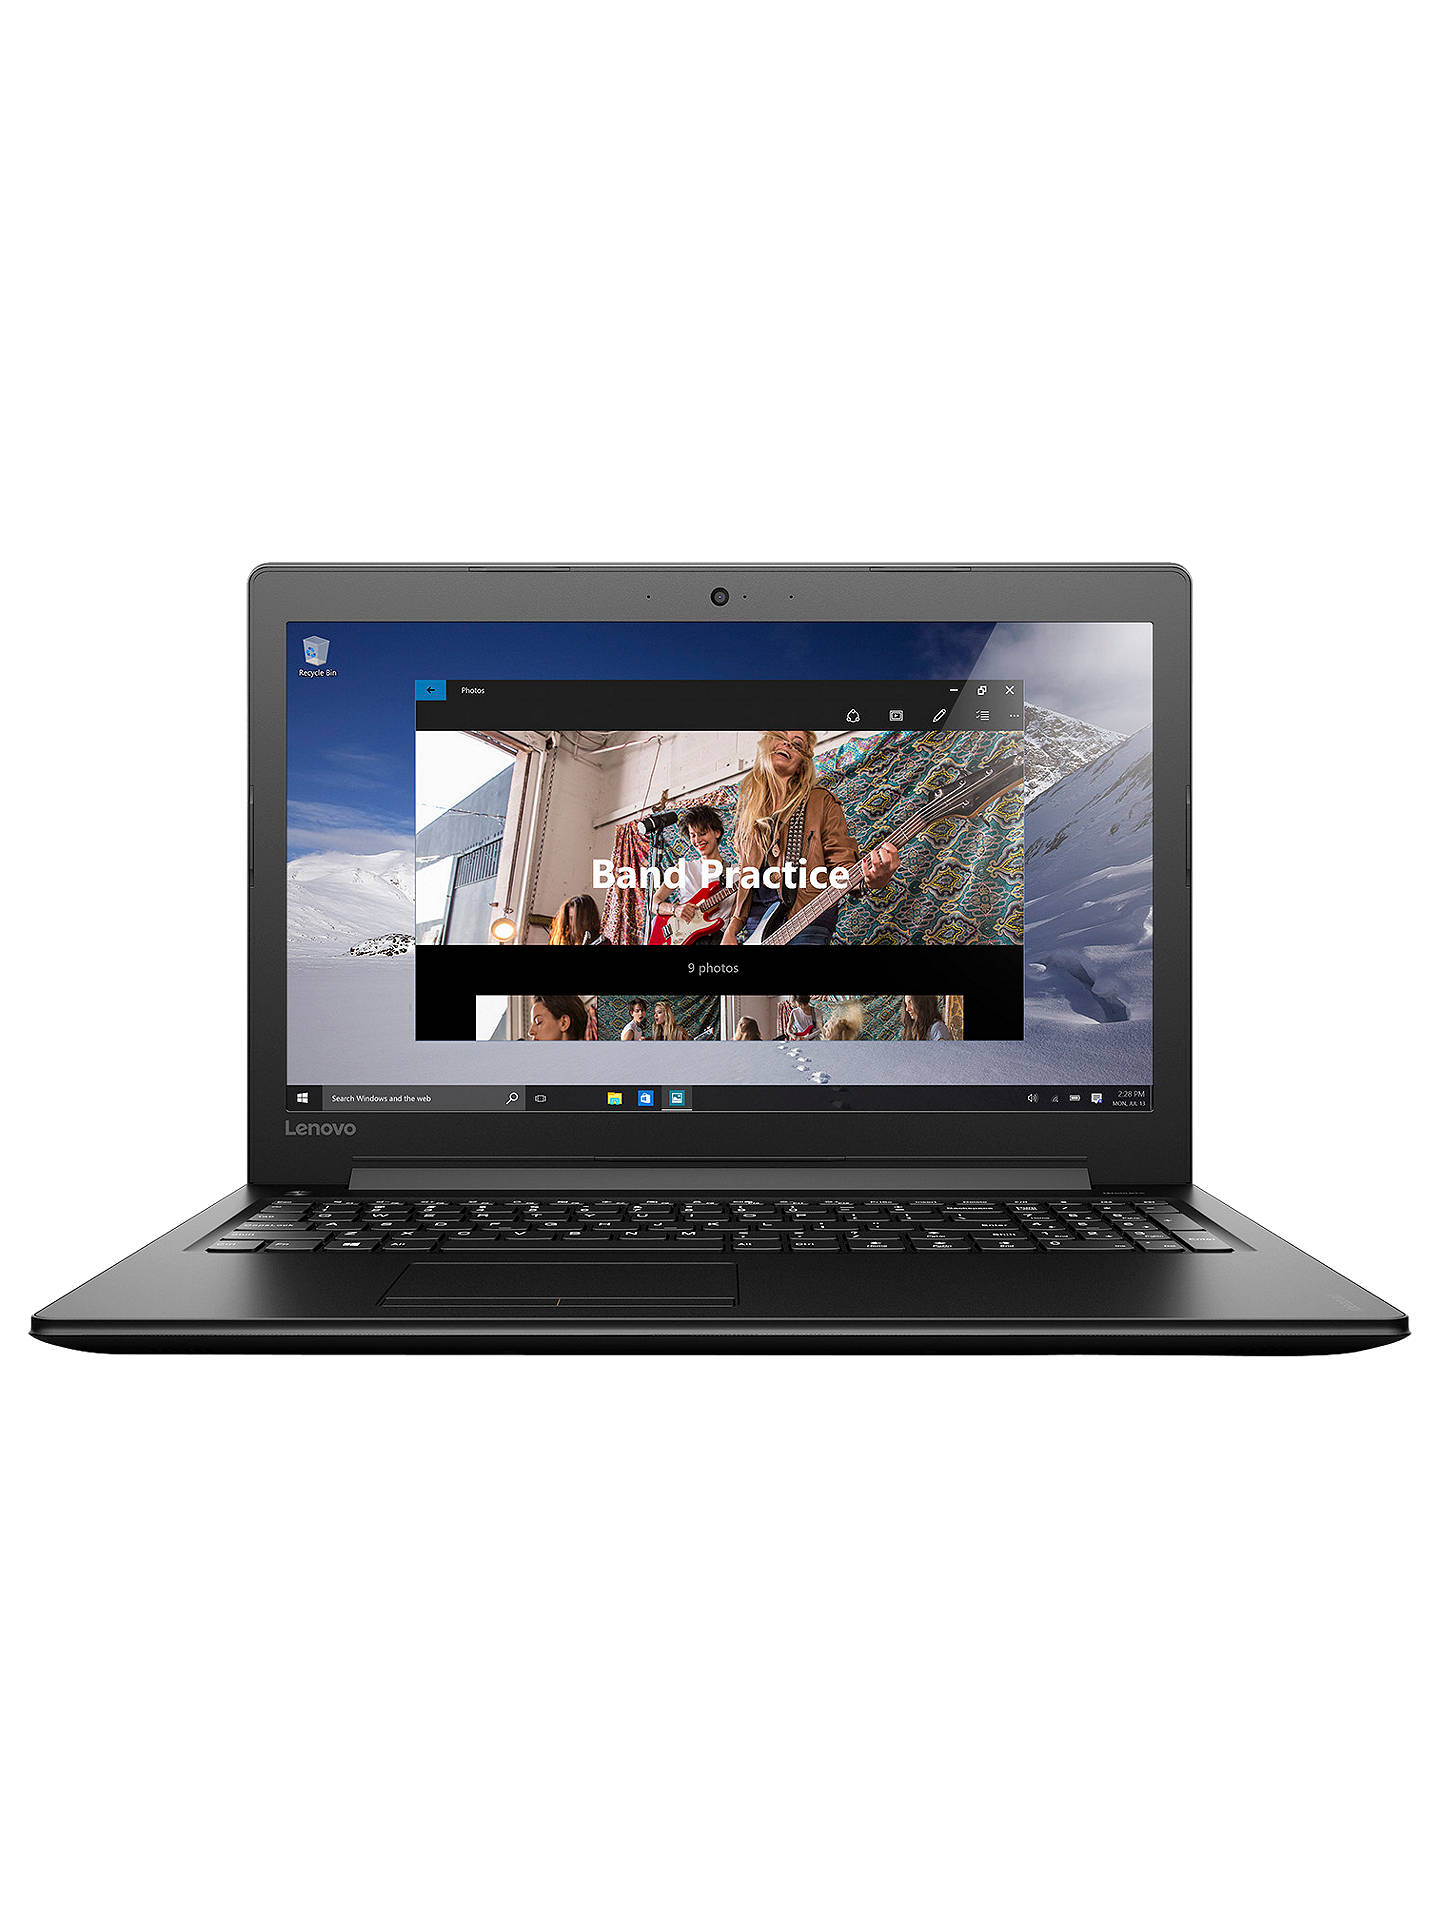 f92572301e98 Lenovo IdeaPad 310 Laptop, AMD A10, 12GB RAM, 1TB, AMD Radeon R5 ...